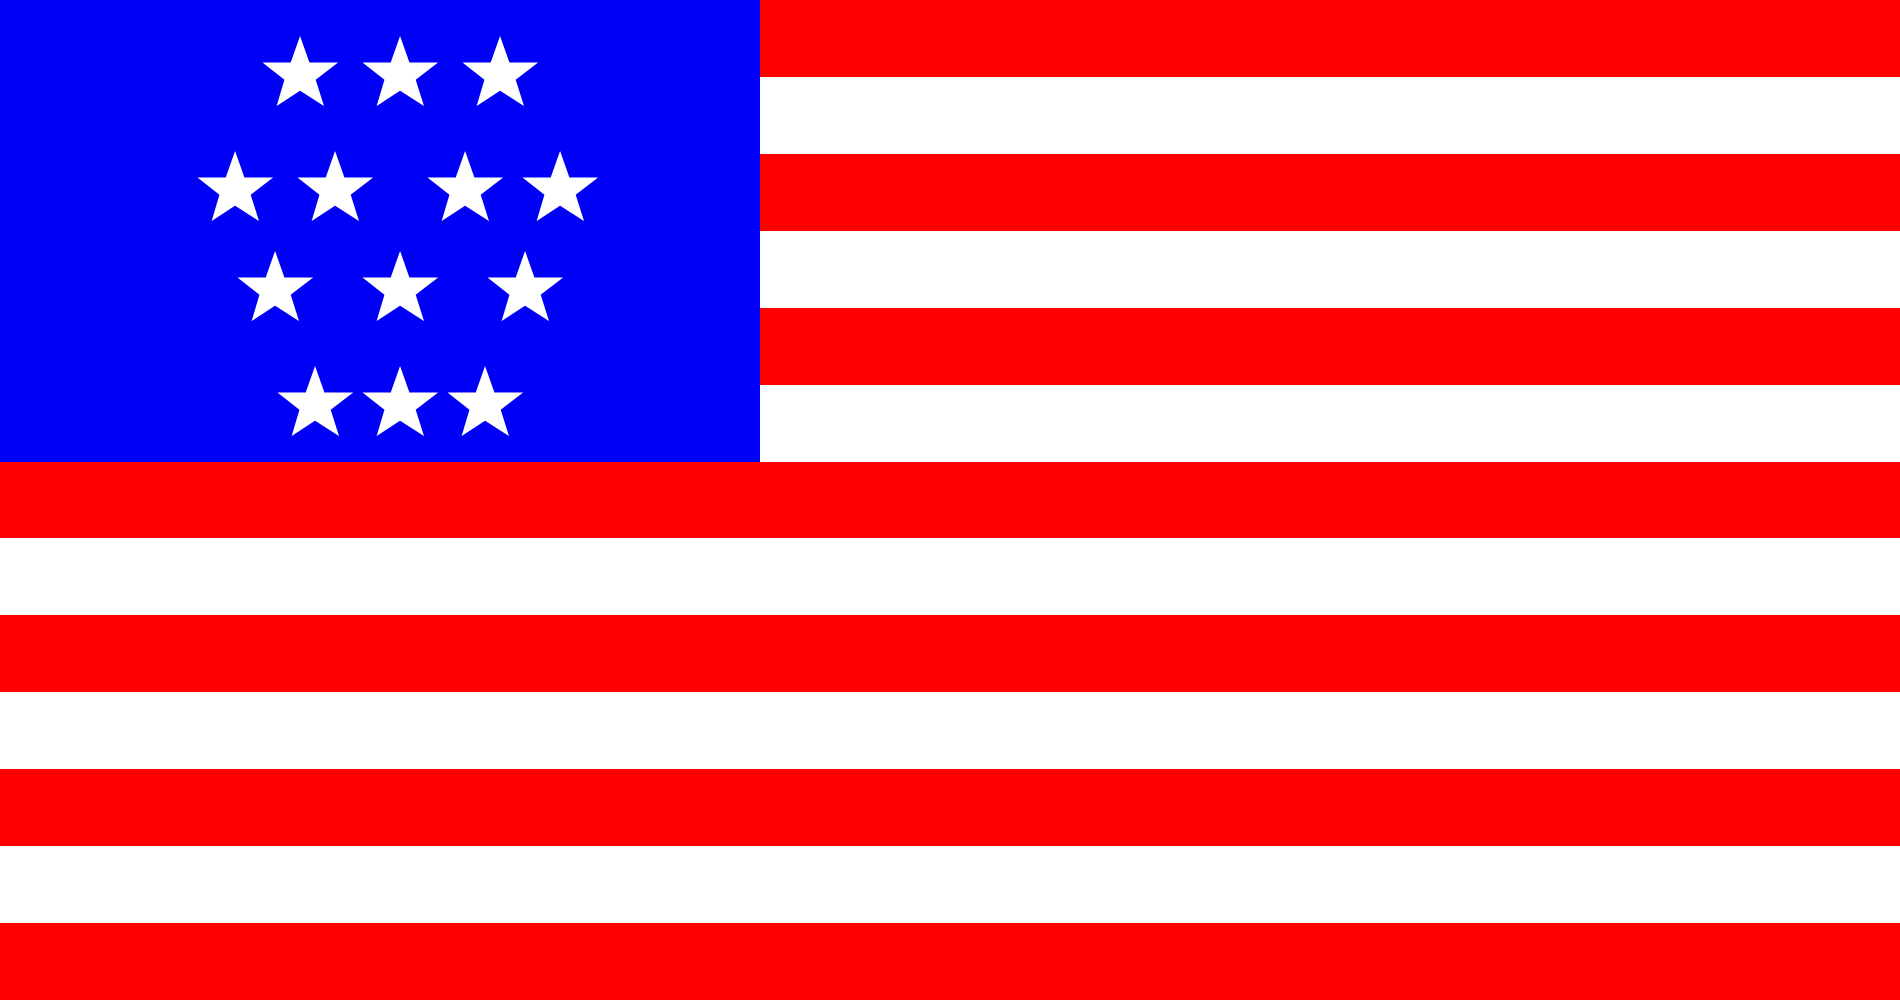 pa flag(muted)(merica 1 white stars).png